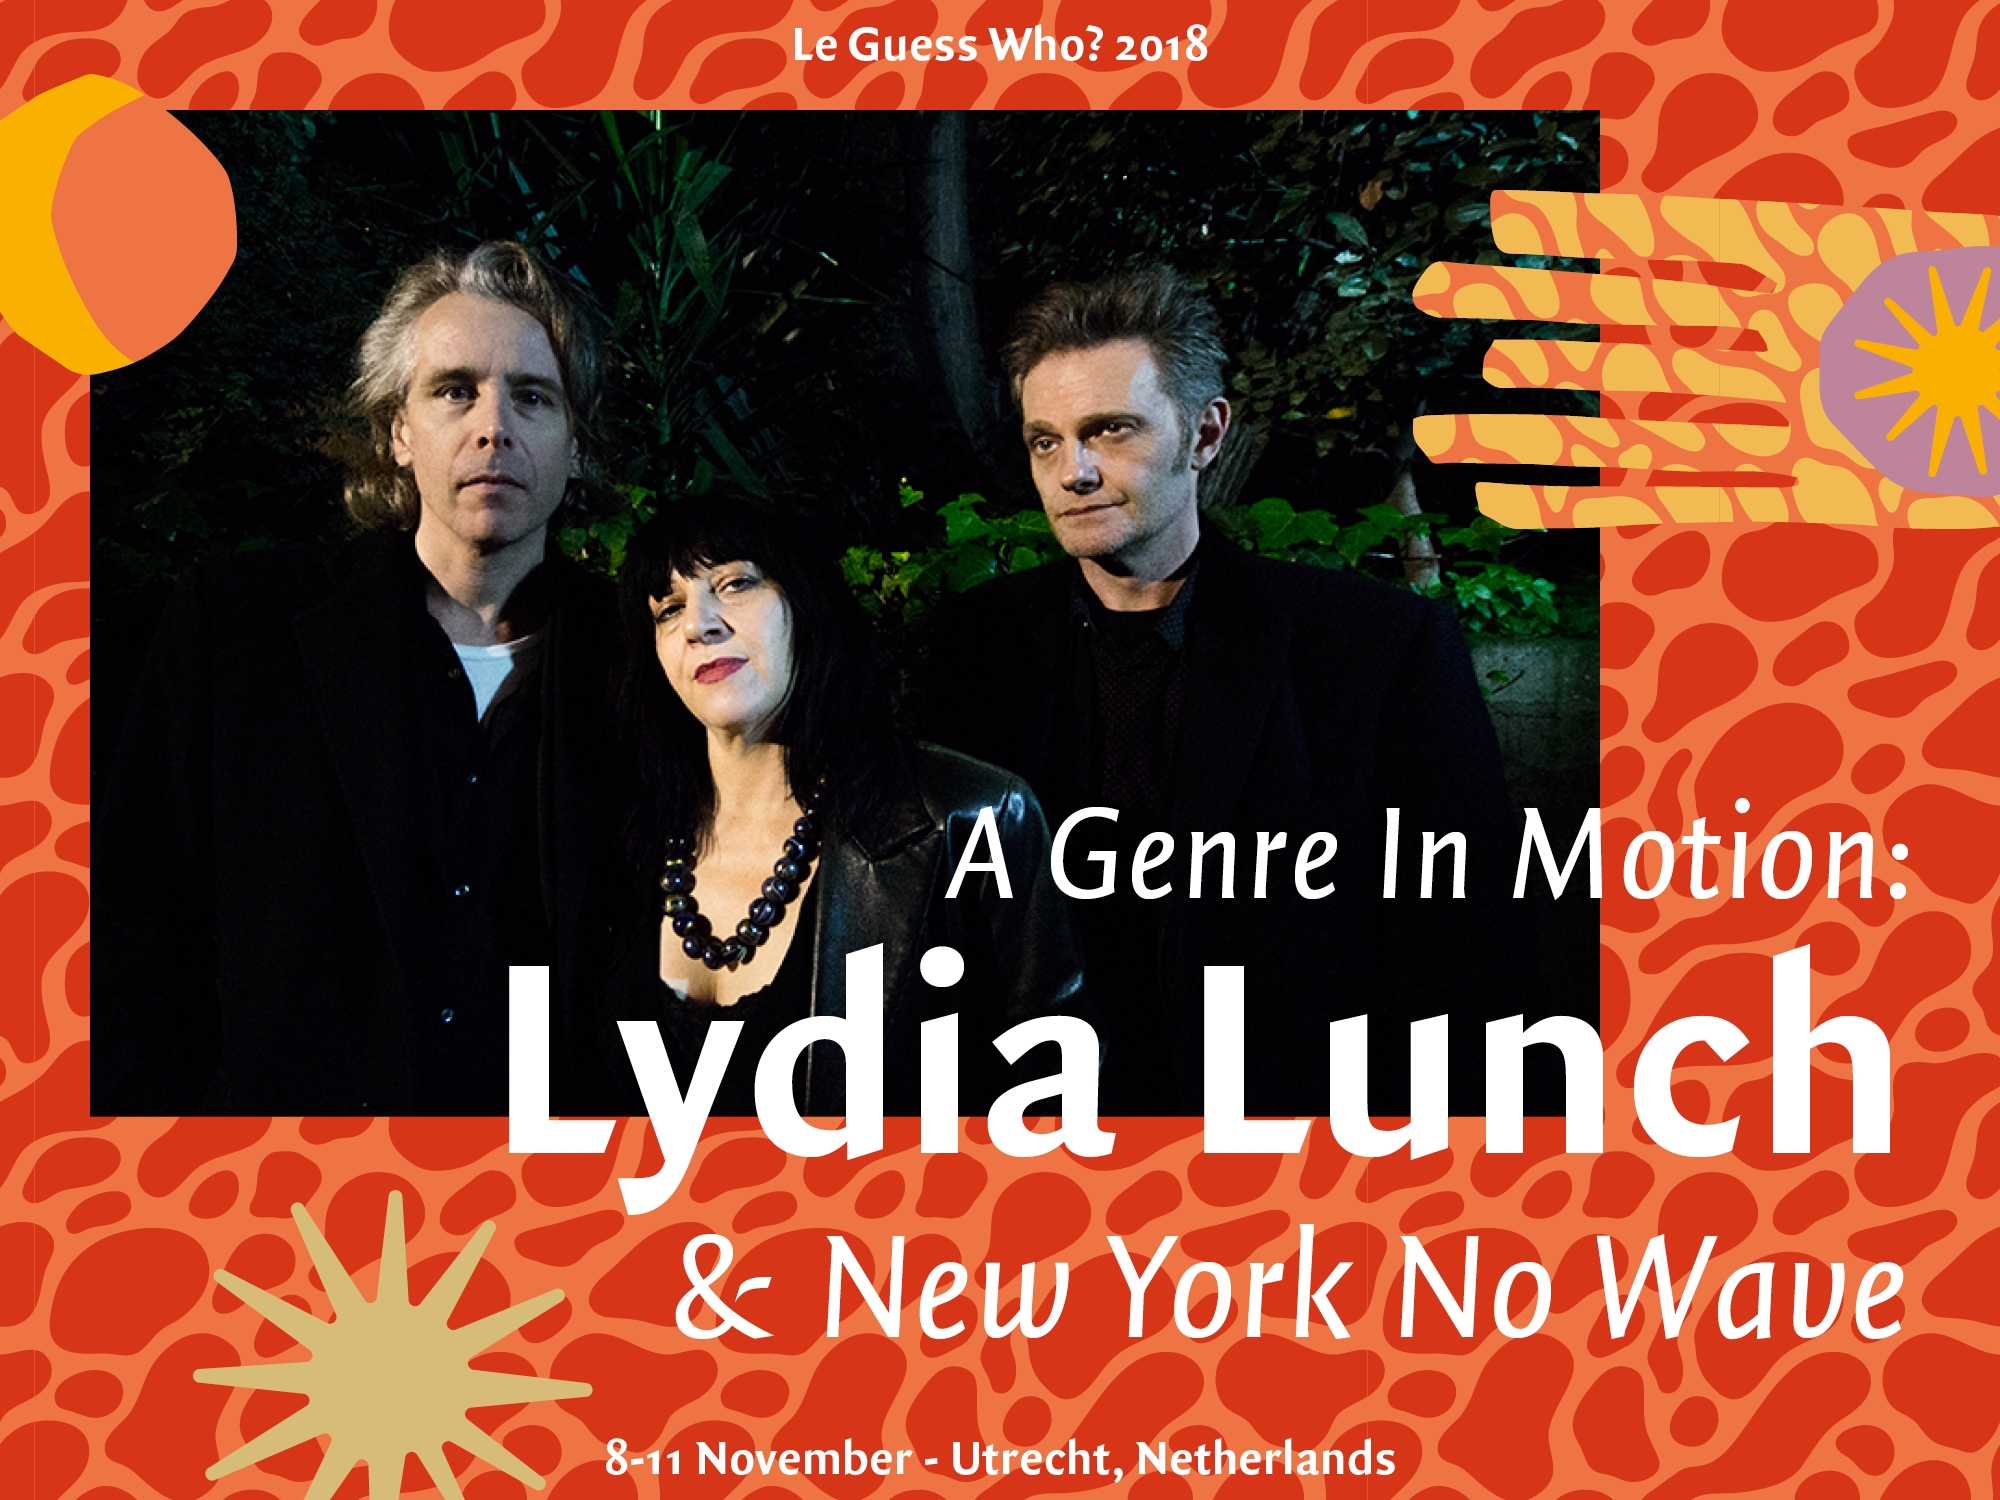 A Genre In Motion: Lydia Lunch & New York No Wave